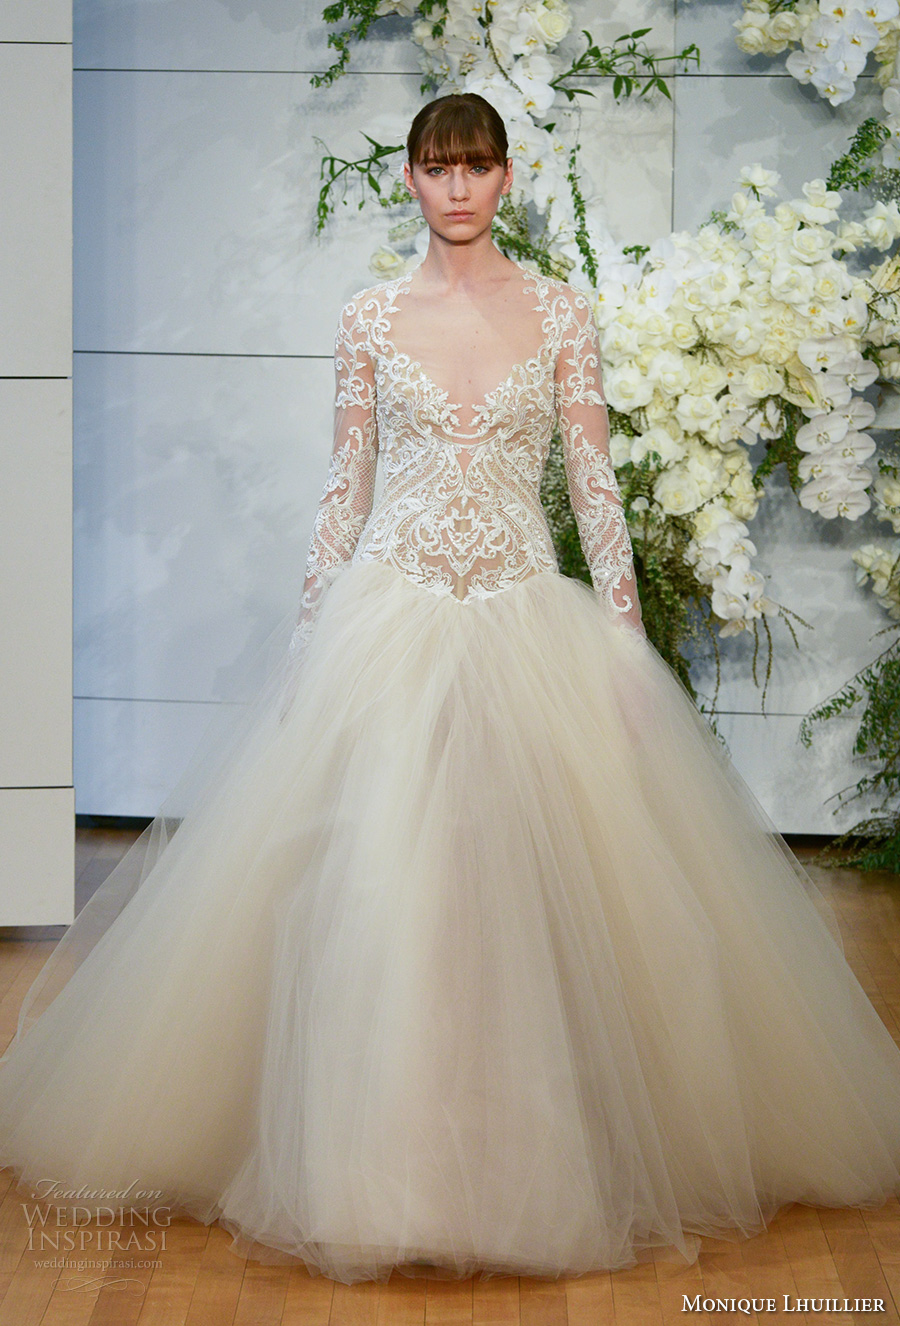 monique lhuillier spring 2018 bridal long sleeves halter v neck heavily embellished lace bodice tulle skirt ivory color princess ball gown covered lace back chapel (marguerite) mv